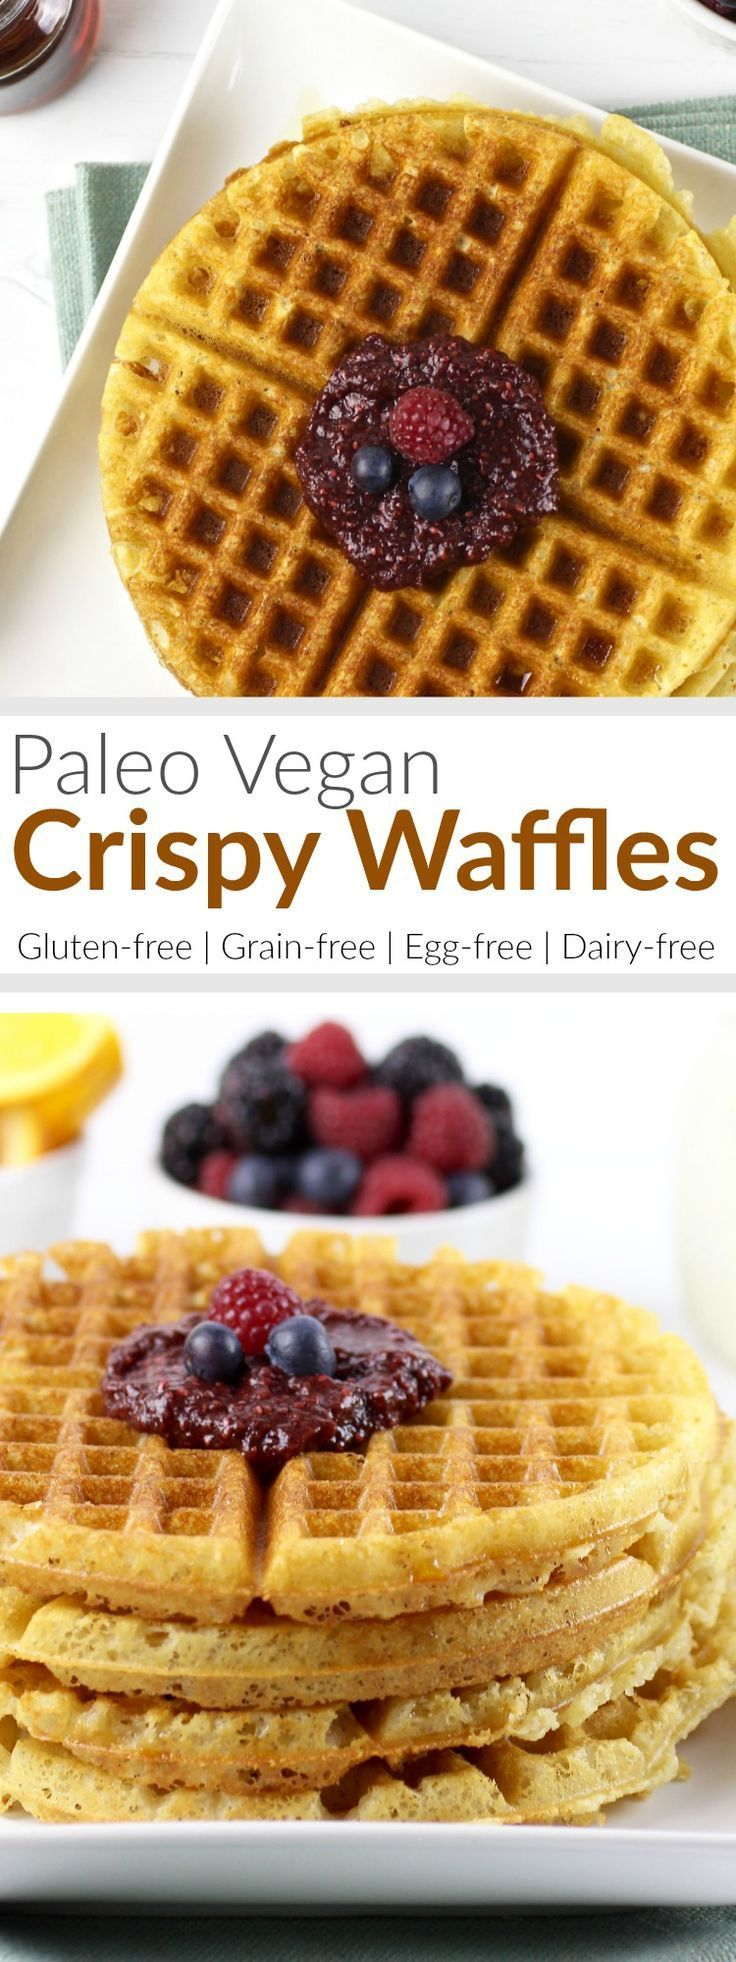 These are the paleo vegan waffles you've been waiting for. Light, crispy and perfectly golden brown. Top with pure maple syrup and fresh fruit for the most heavenly breakfast you can imagine. | The Real Food Dietitians